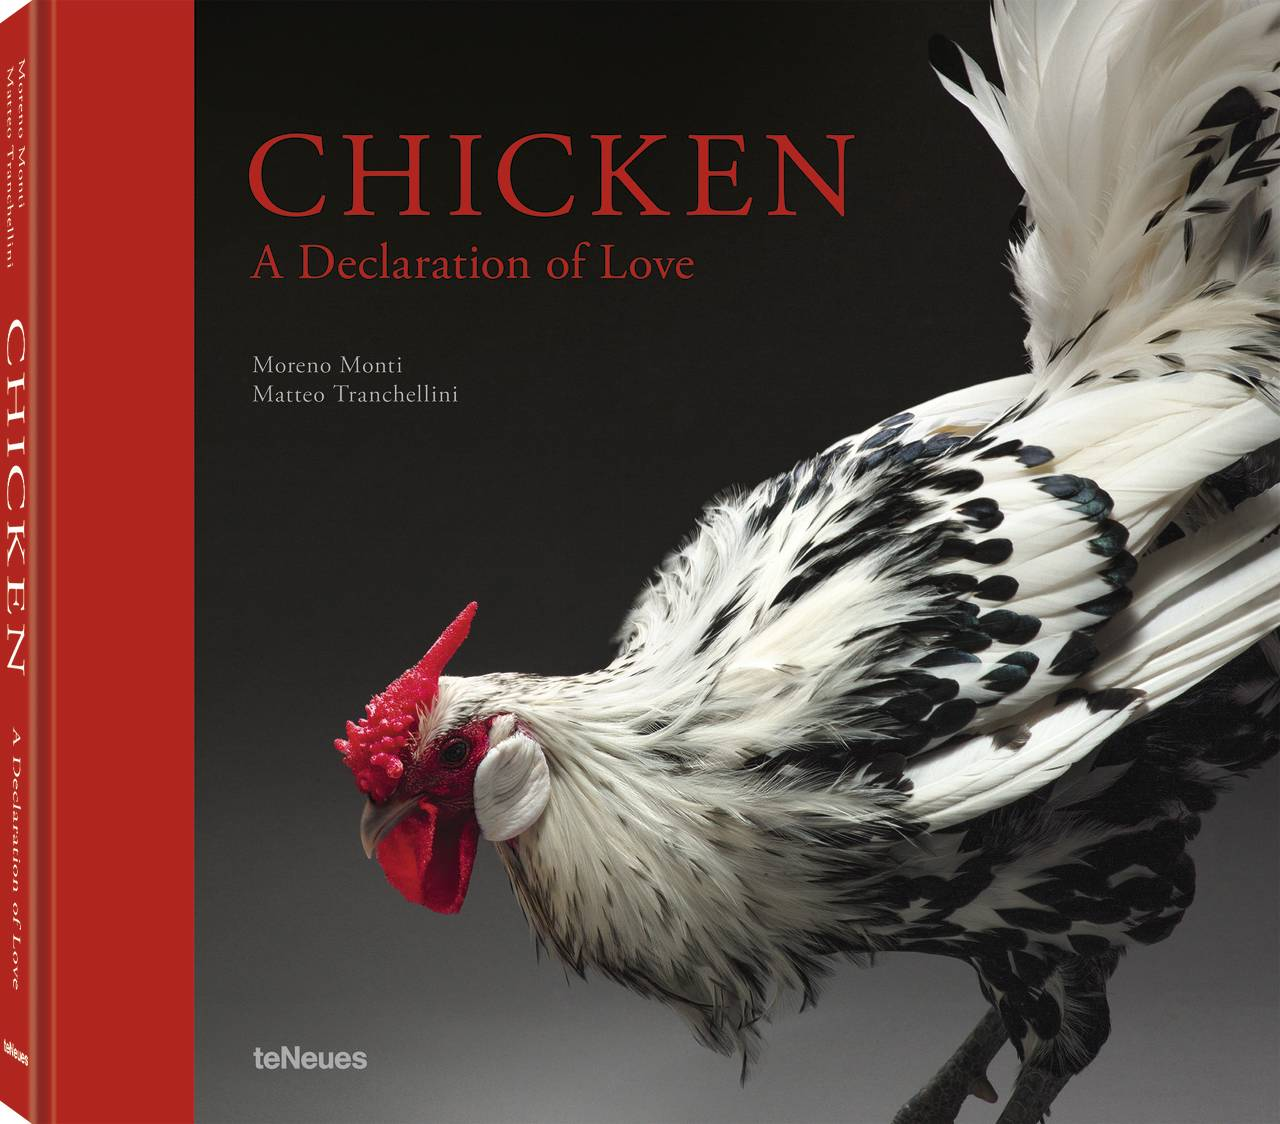 © Chicken - A Declaration of Love by Moreno Monti & Matteo Tranchellini, to be published by teNeues in March 2020, www.teneues.com, Hamburgh, Photo © Moreno Monti & Matteo Tranchellini. All rights reserved.